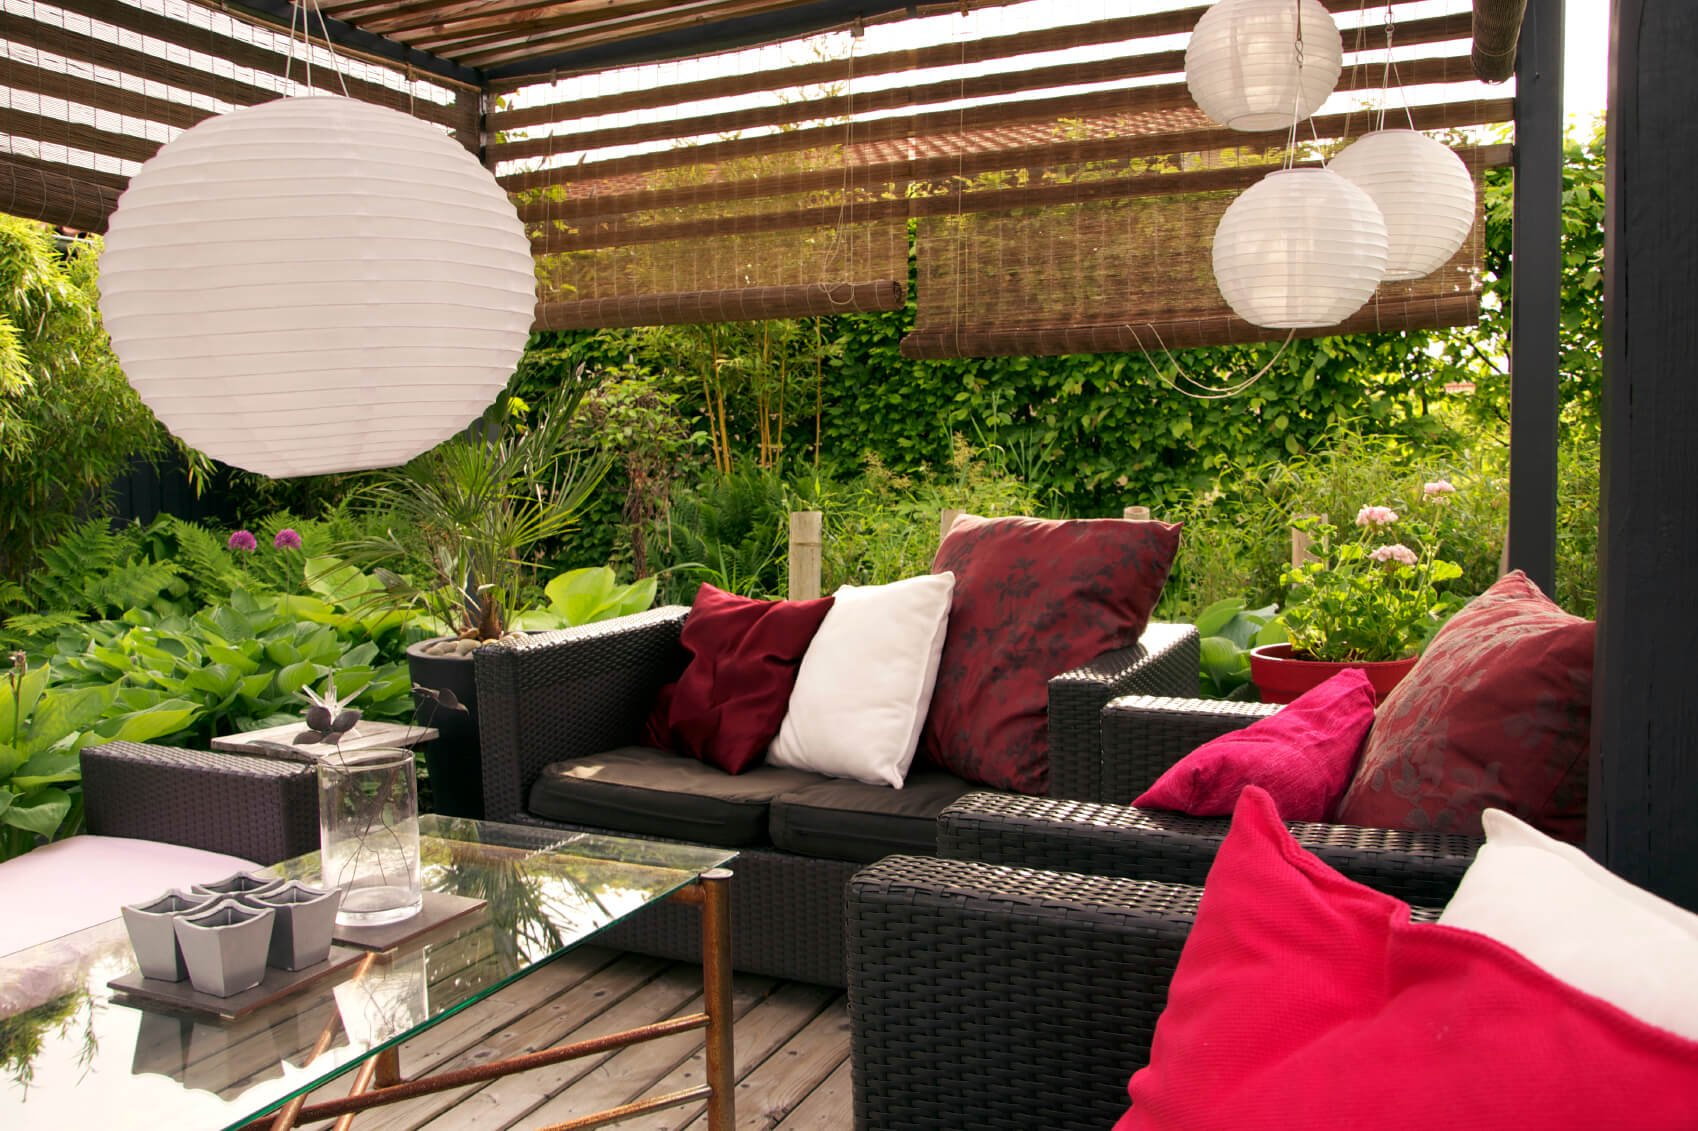 Hanging shades are a way to break up space and build privacy. You can hang them from the end of an overhang, but you can also build or buy a simple wooden frame to hang them from and have a mobile screen that you can place wherever you please.